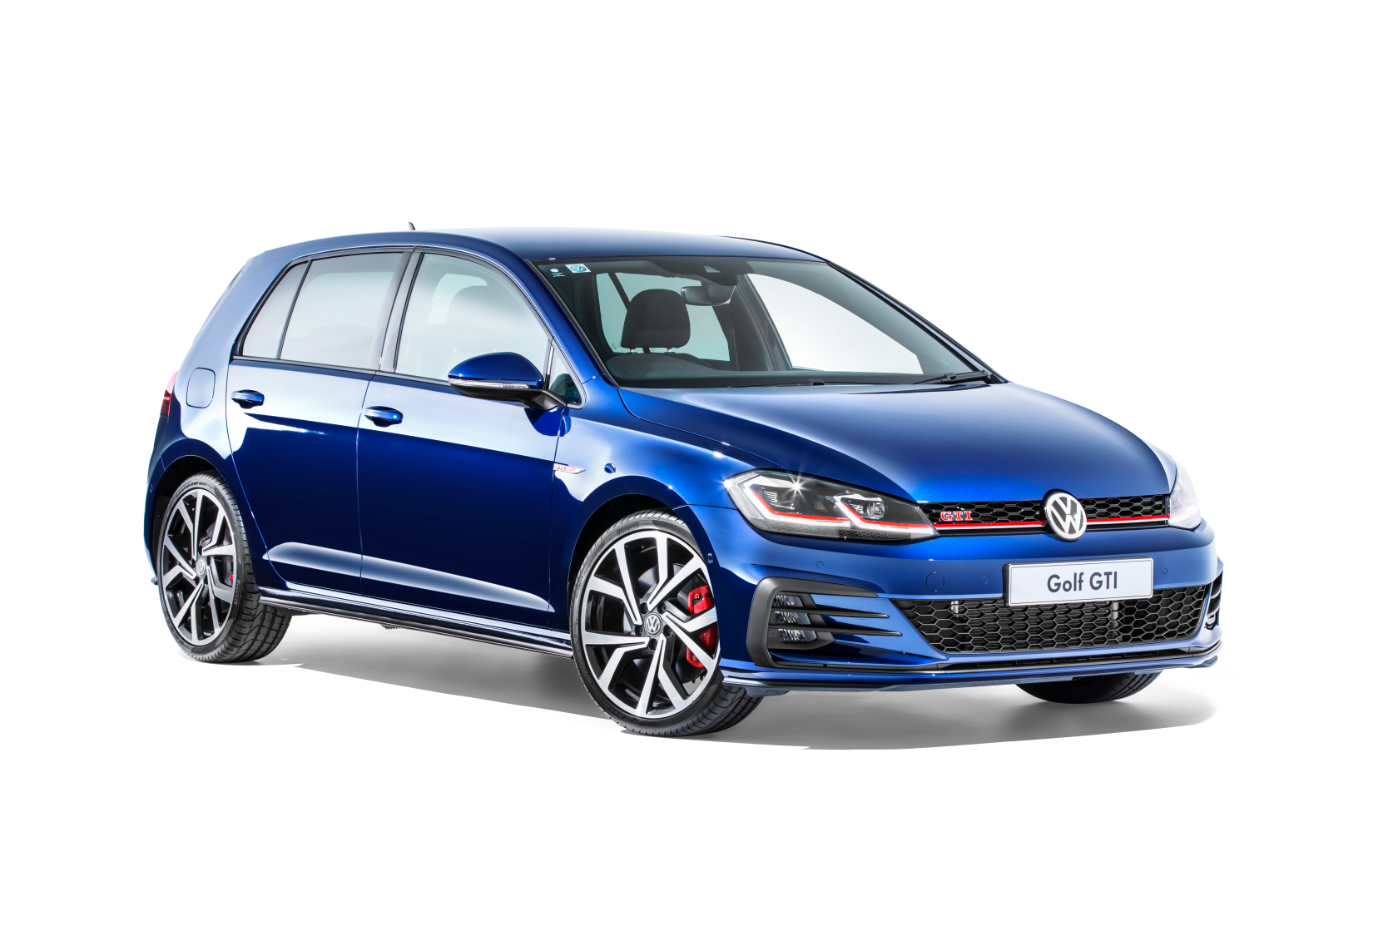 VW Golf GTI increases power and price